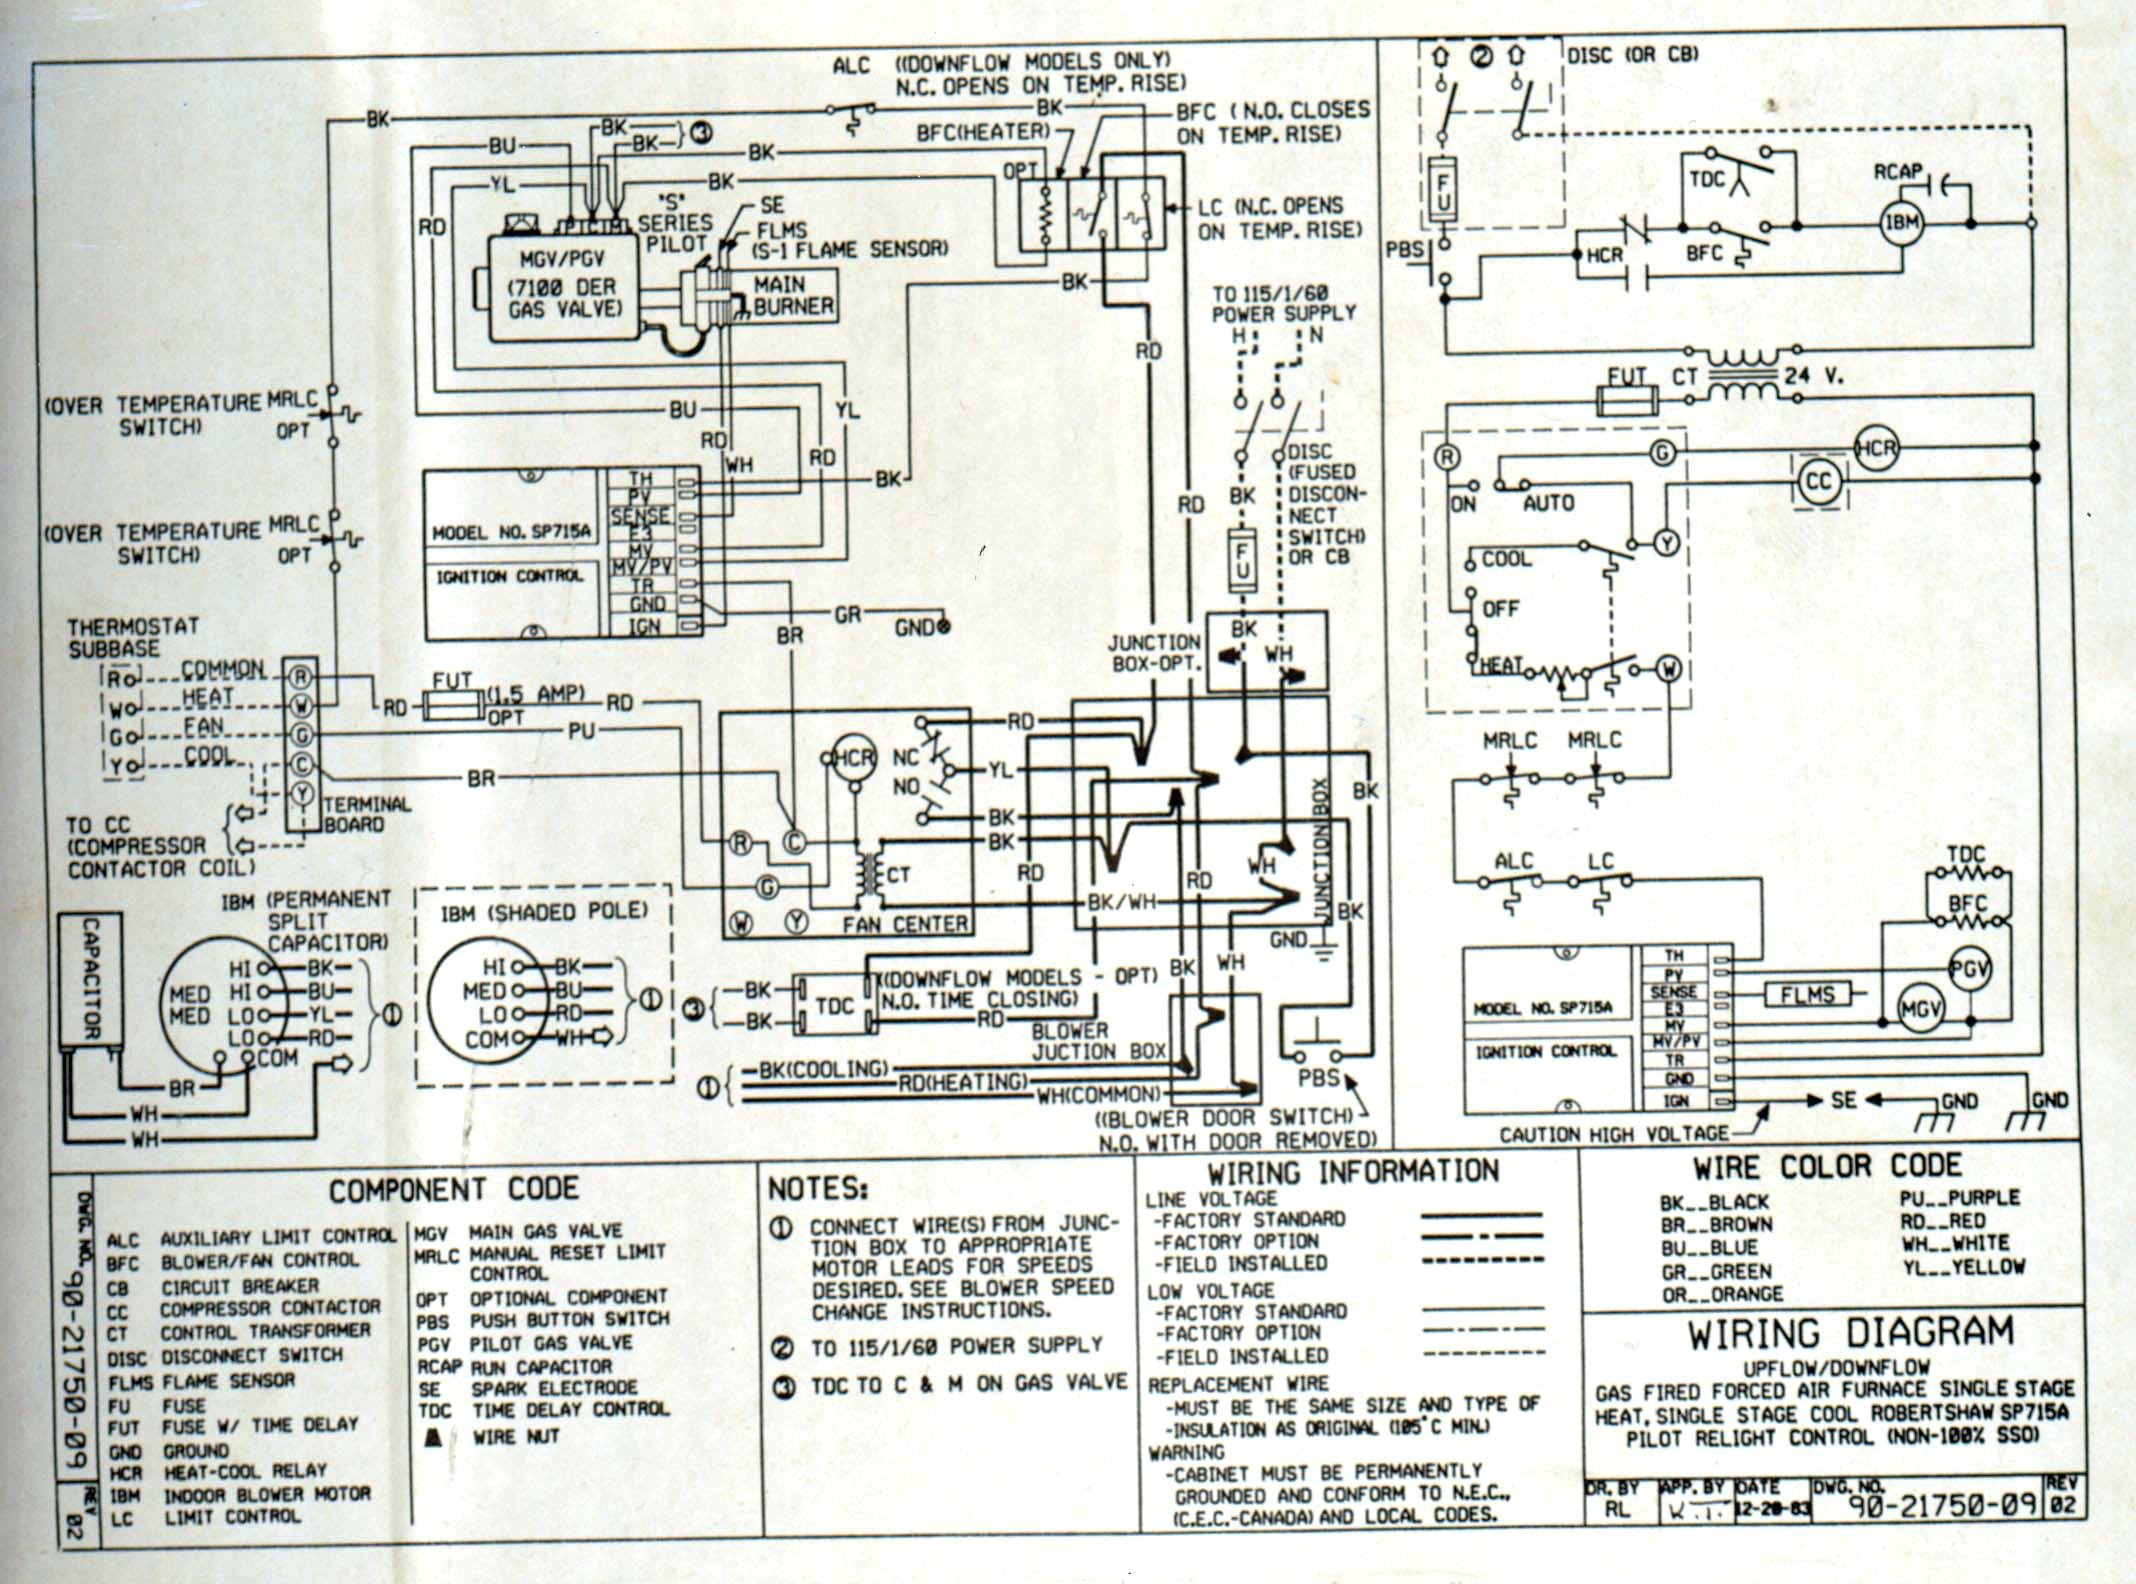 goodman aruf air handler wiring diagram Download-Goodman Aruf Air Handler Wiring Diagram Luxury Wiring Diagram Goodman Electric Furnace In Throughout Carrier Ac 10-r